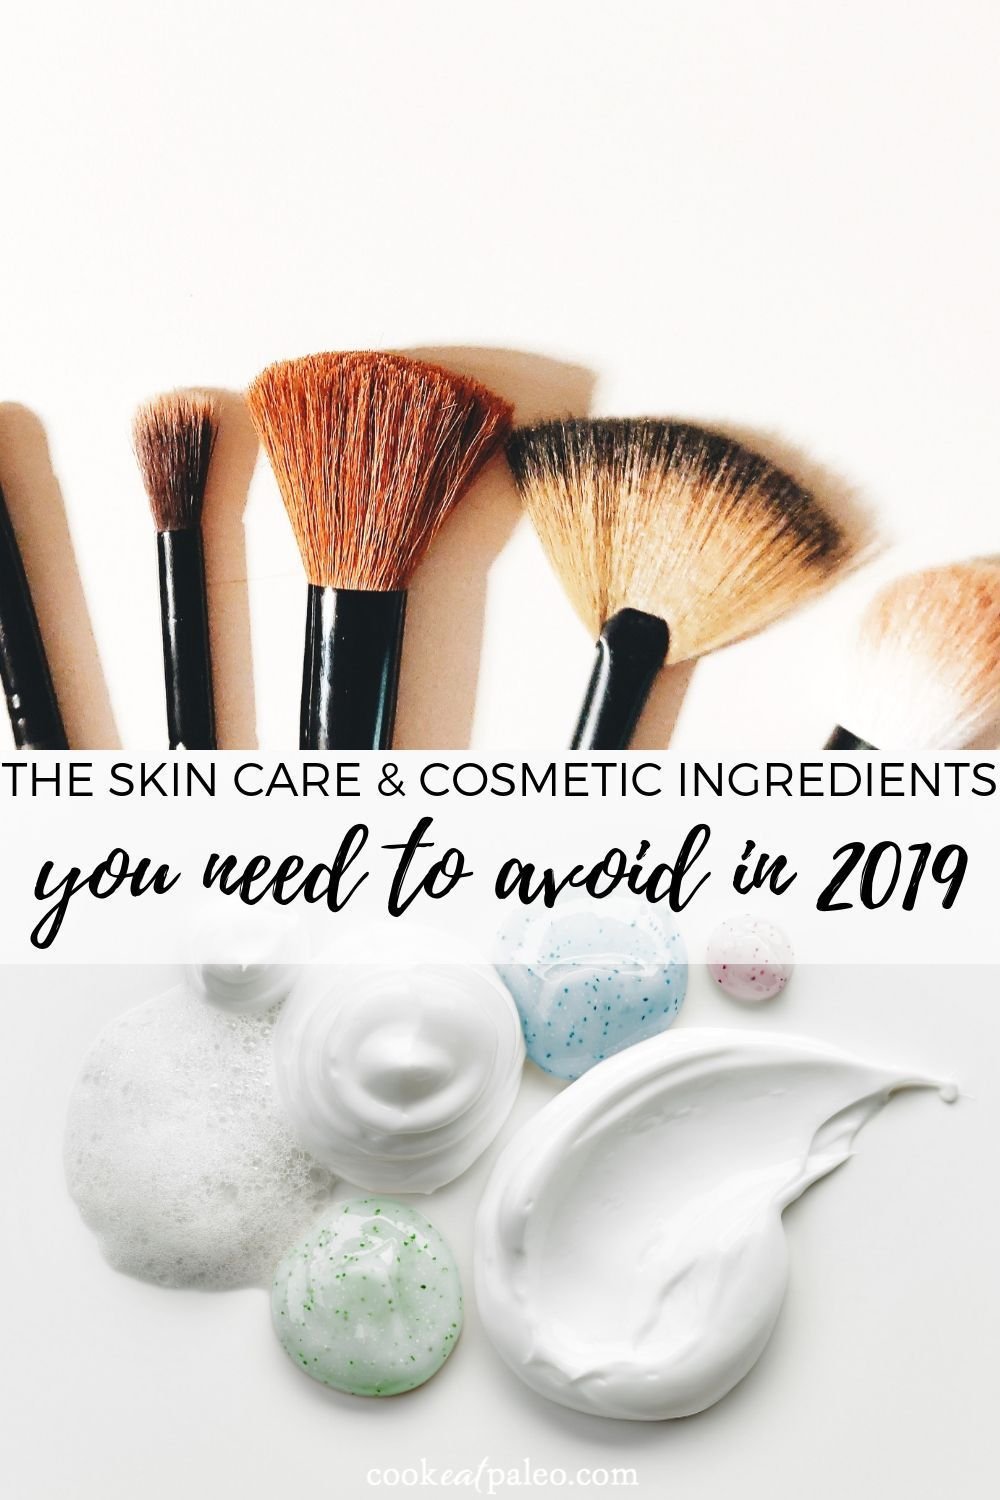 20 Ingredients To Avoid In Skin Care Products Skin care